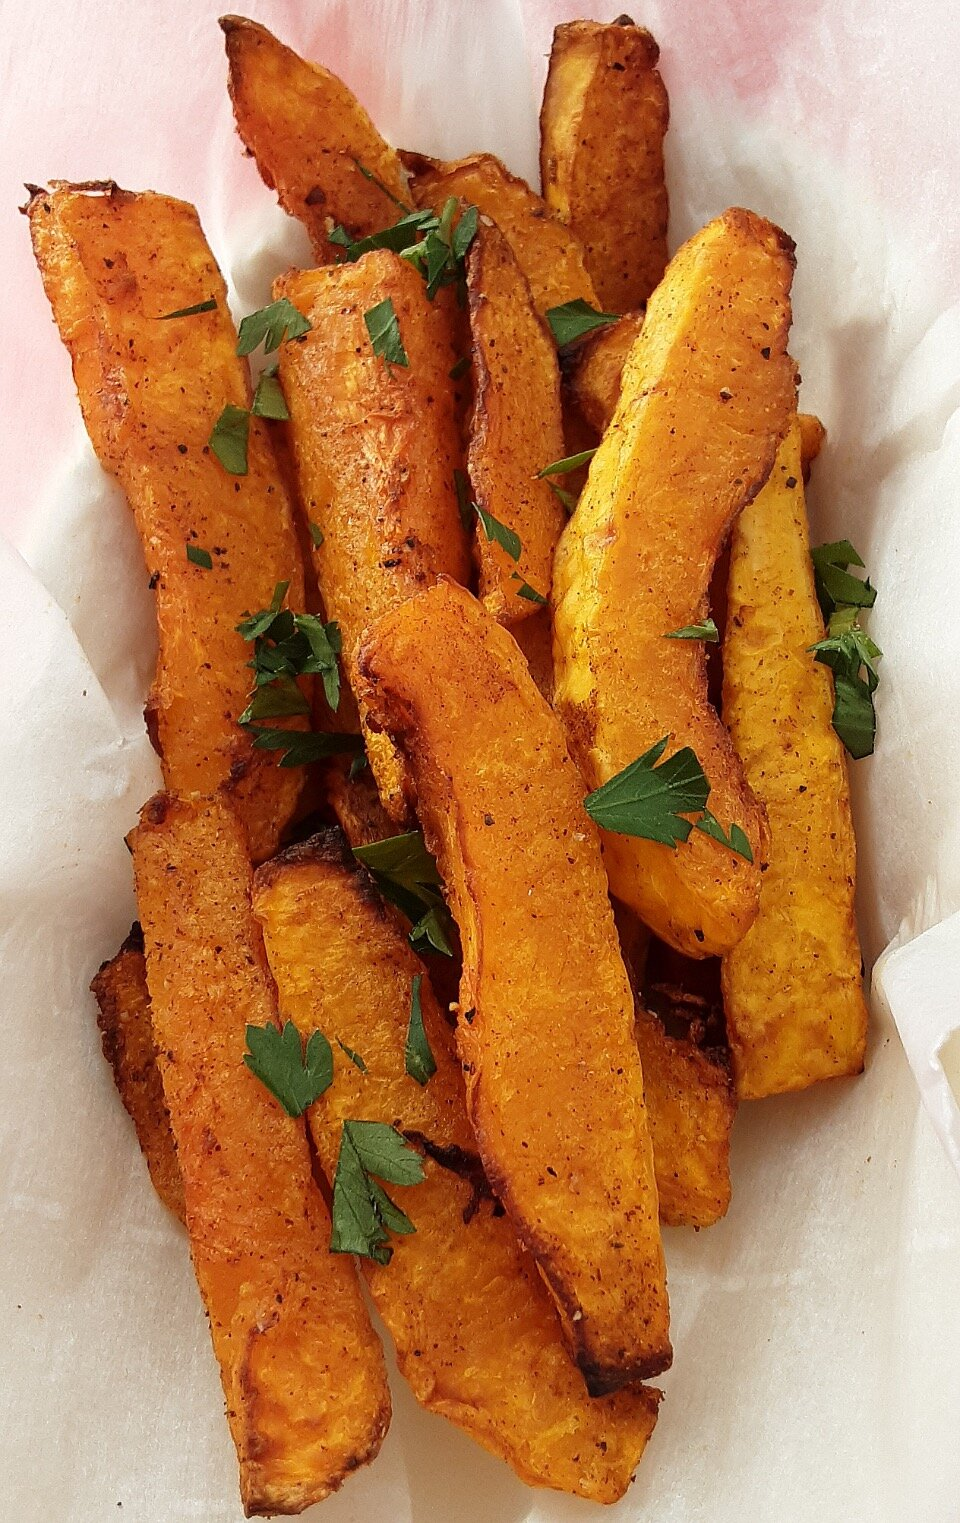 back to chinese five spice air fryer butternut squash fries recipe